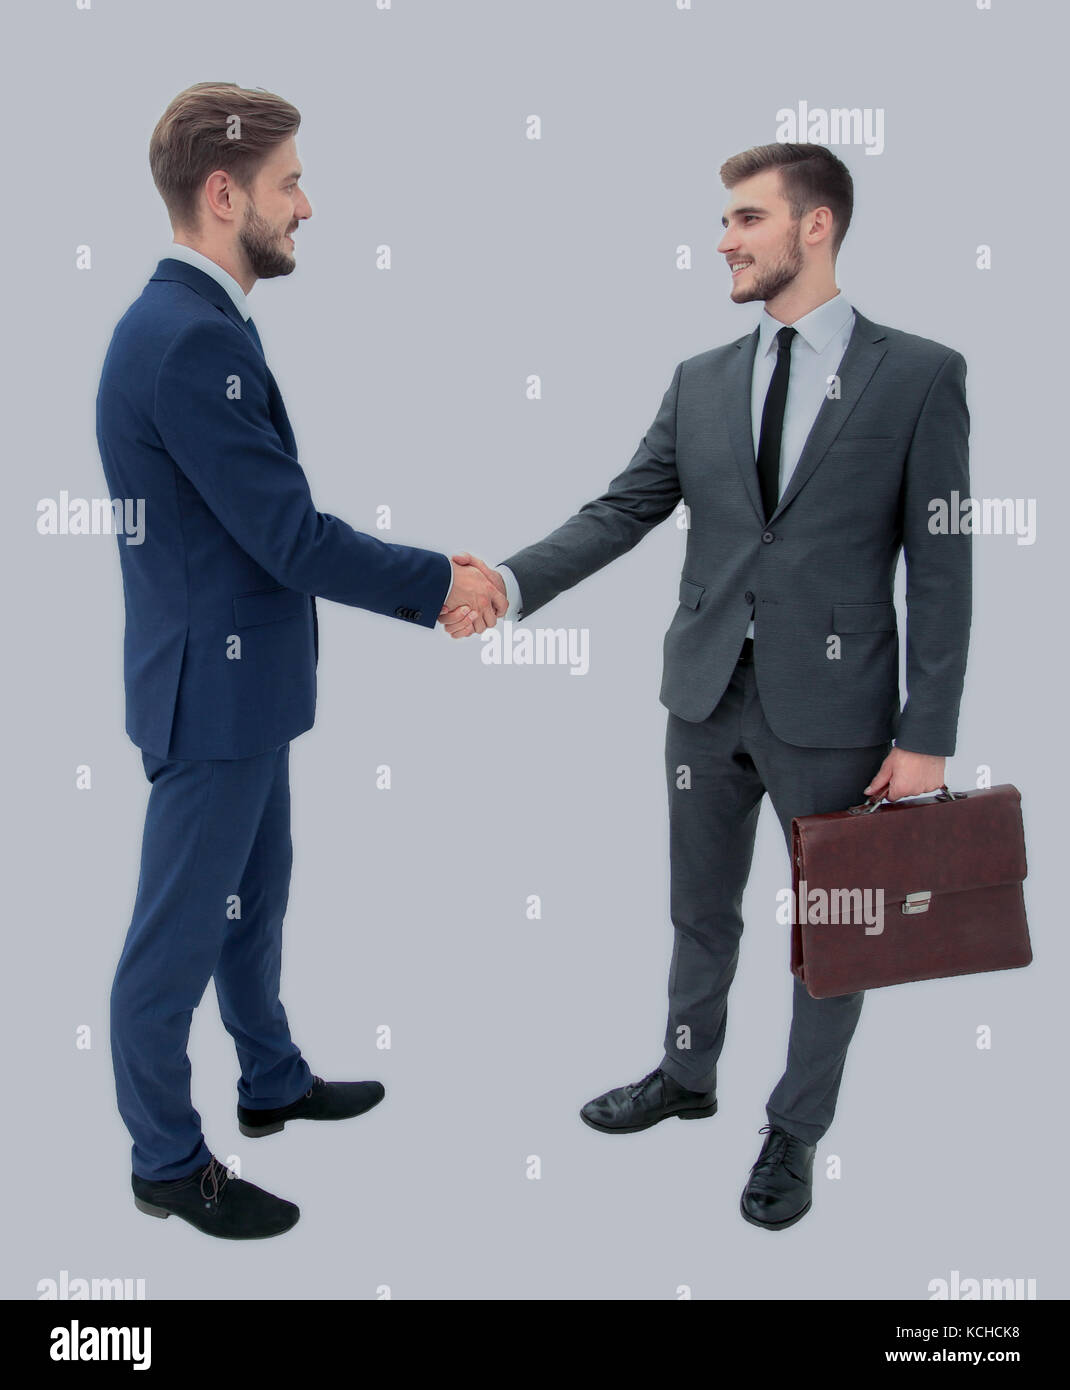 lawyer shaking hands with client welcoming him at the meeting - Stock Image